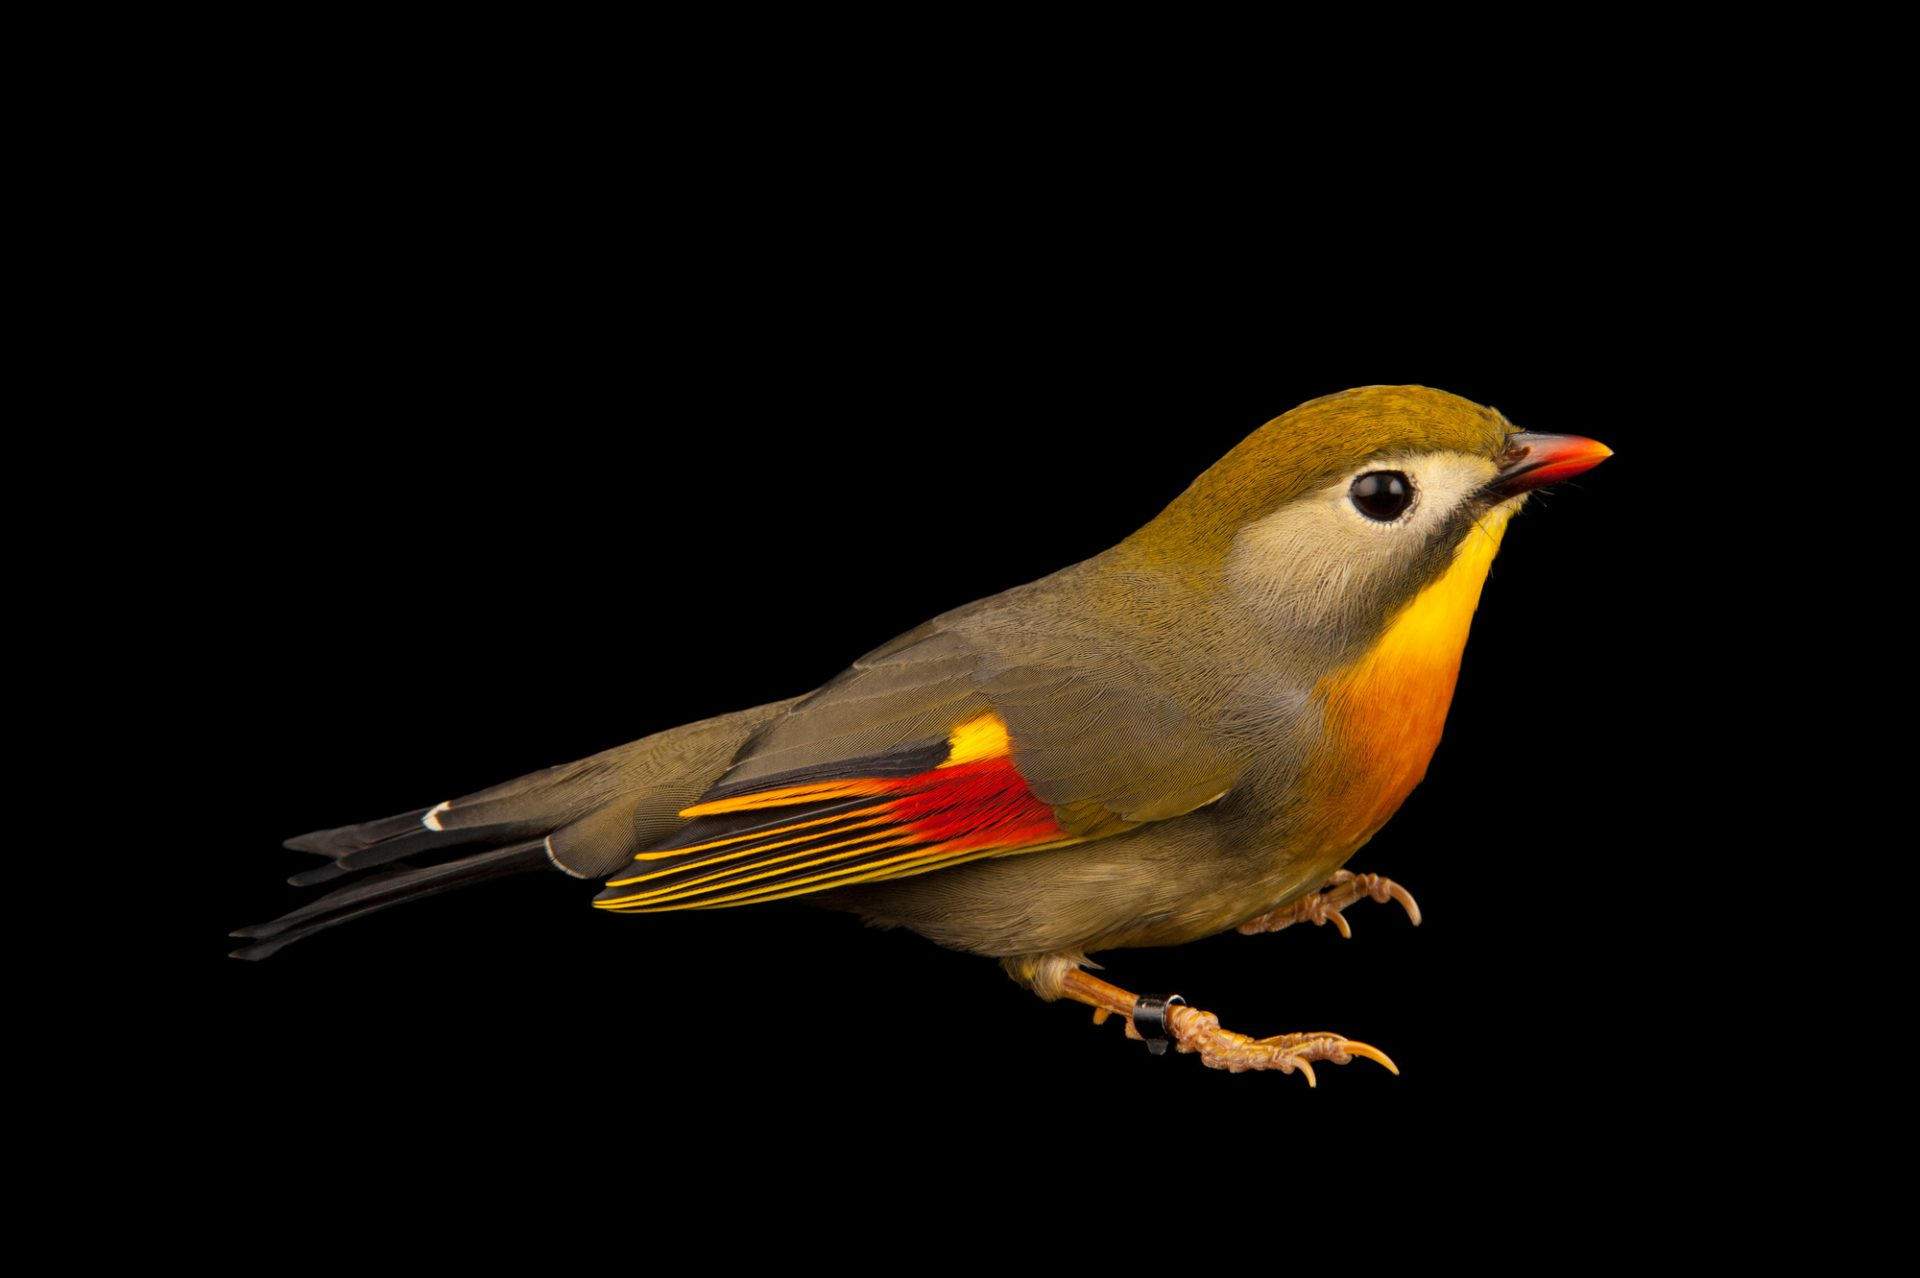 A red-billed leiothrix (Leiothrix lutea) at the Houston Zoo.